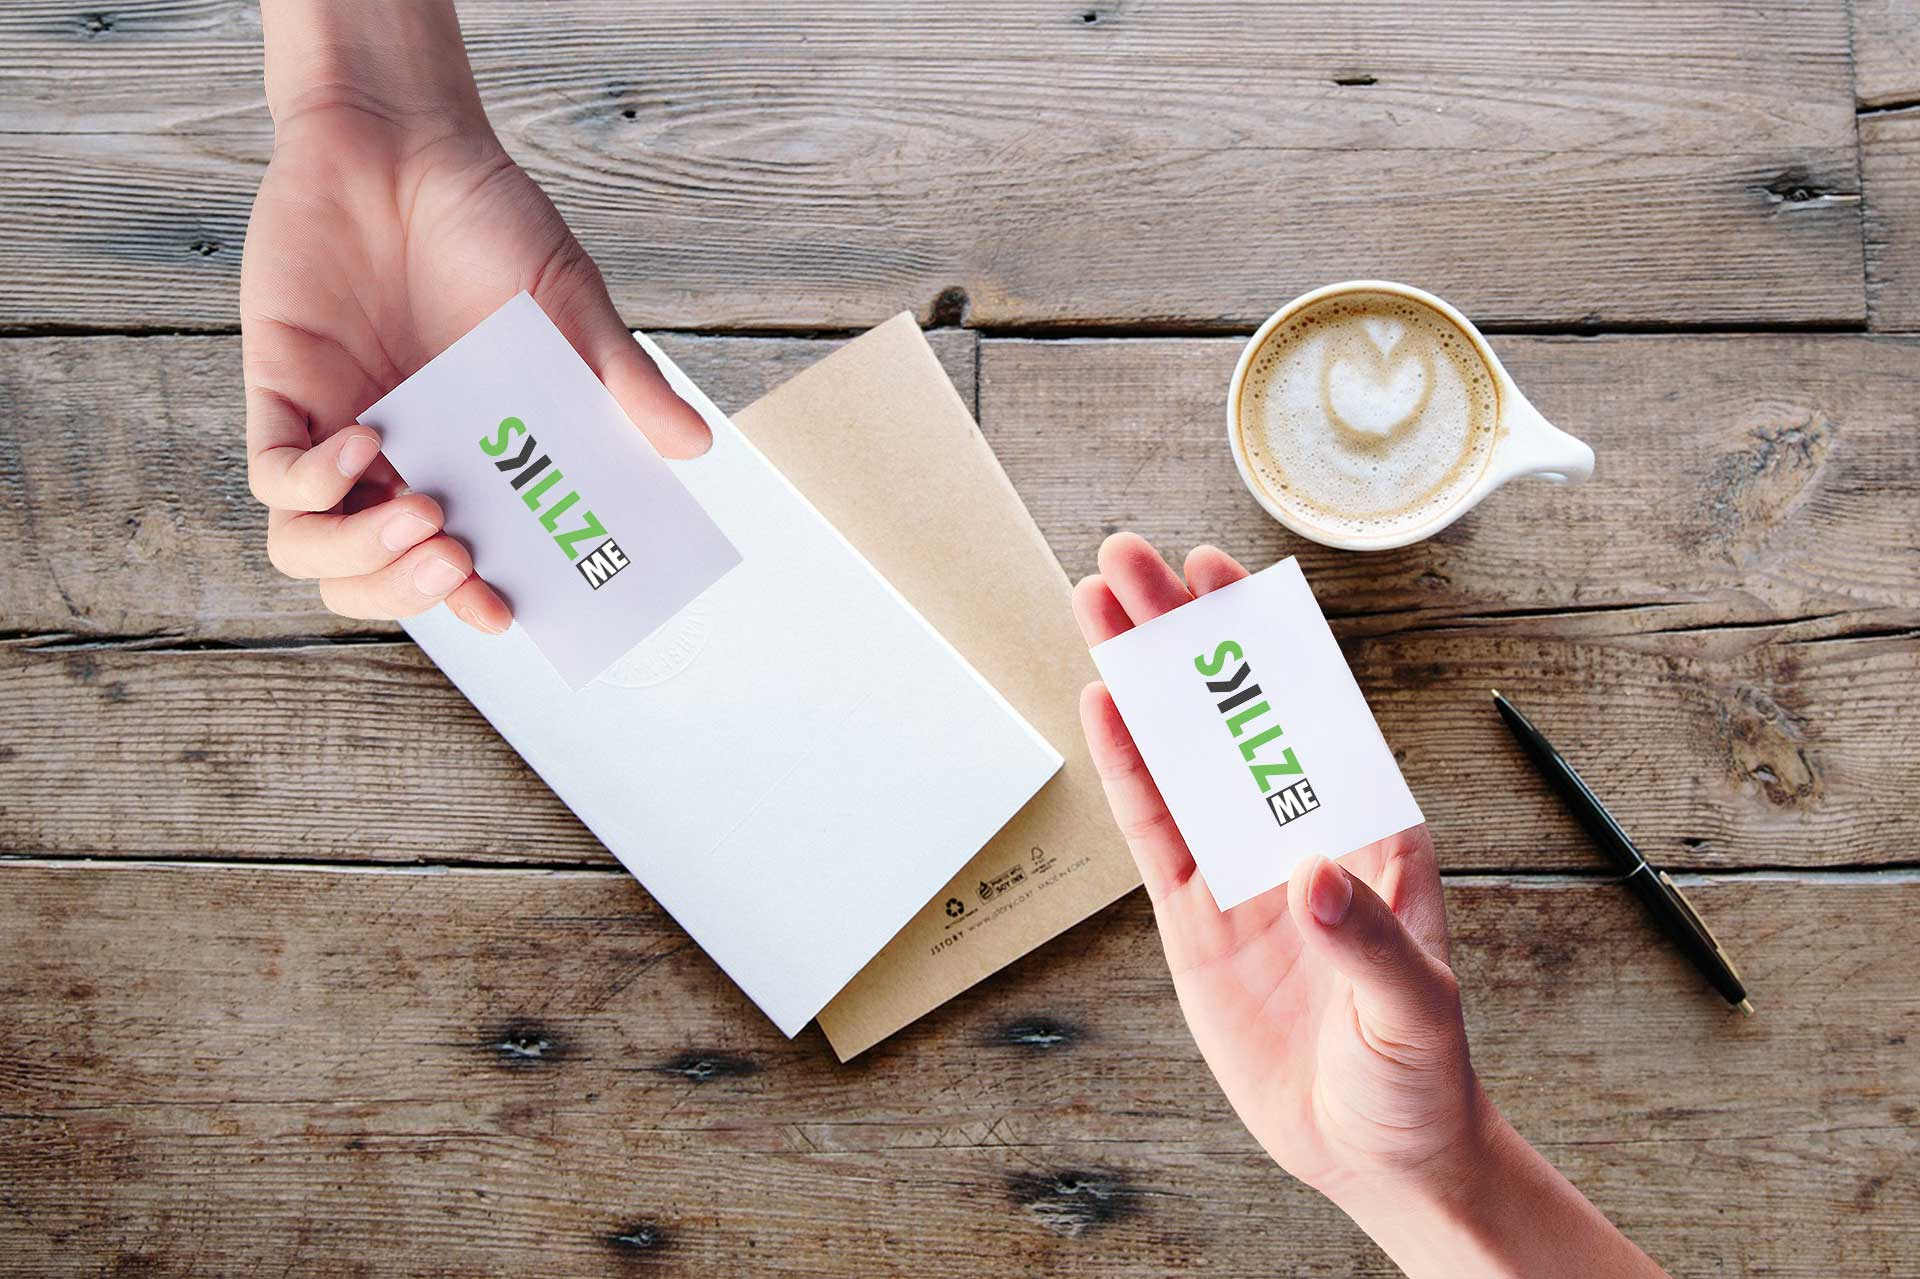 Add your business card in all your letters